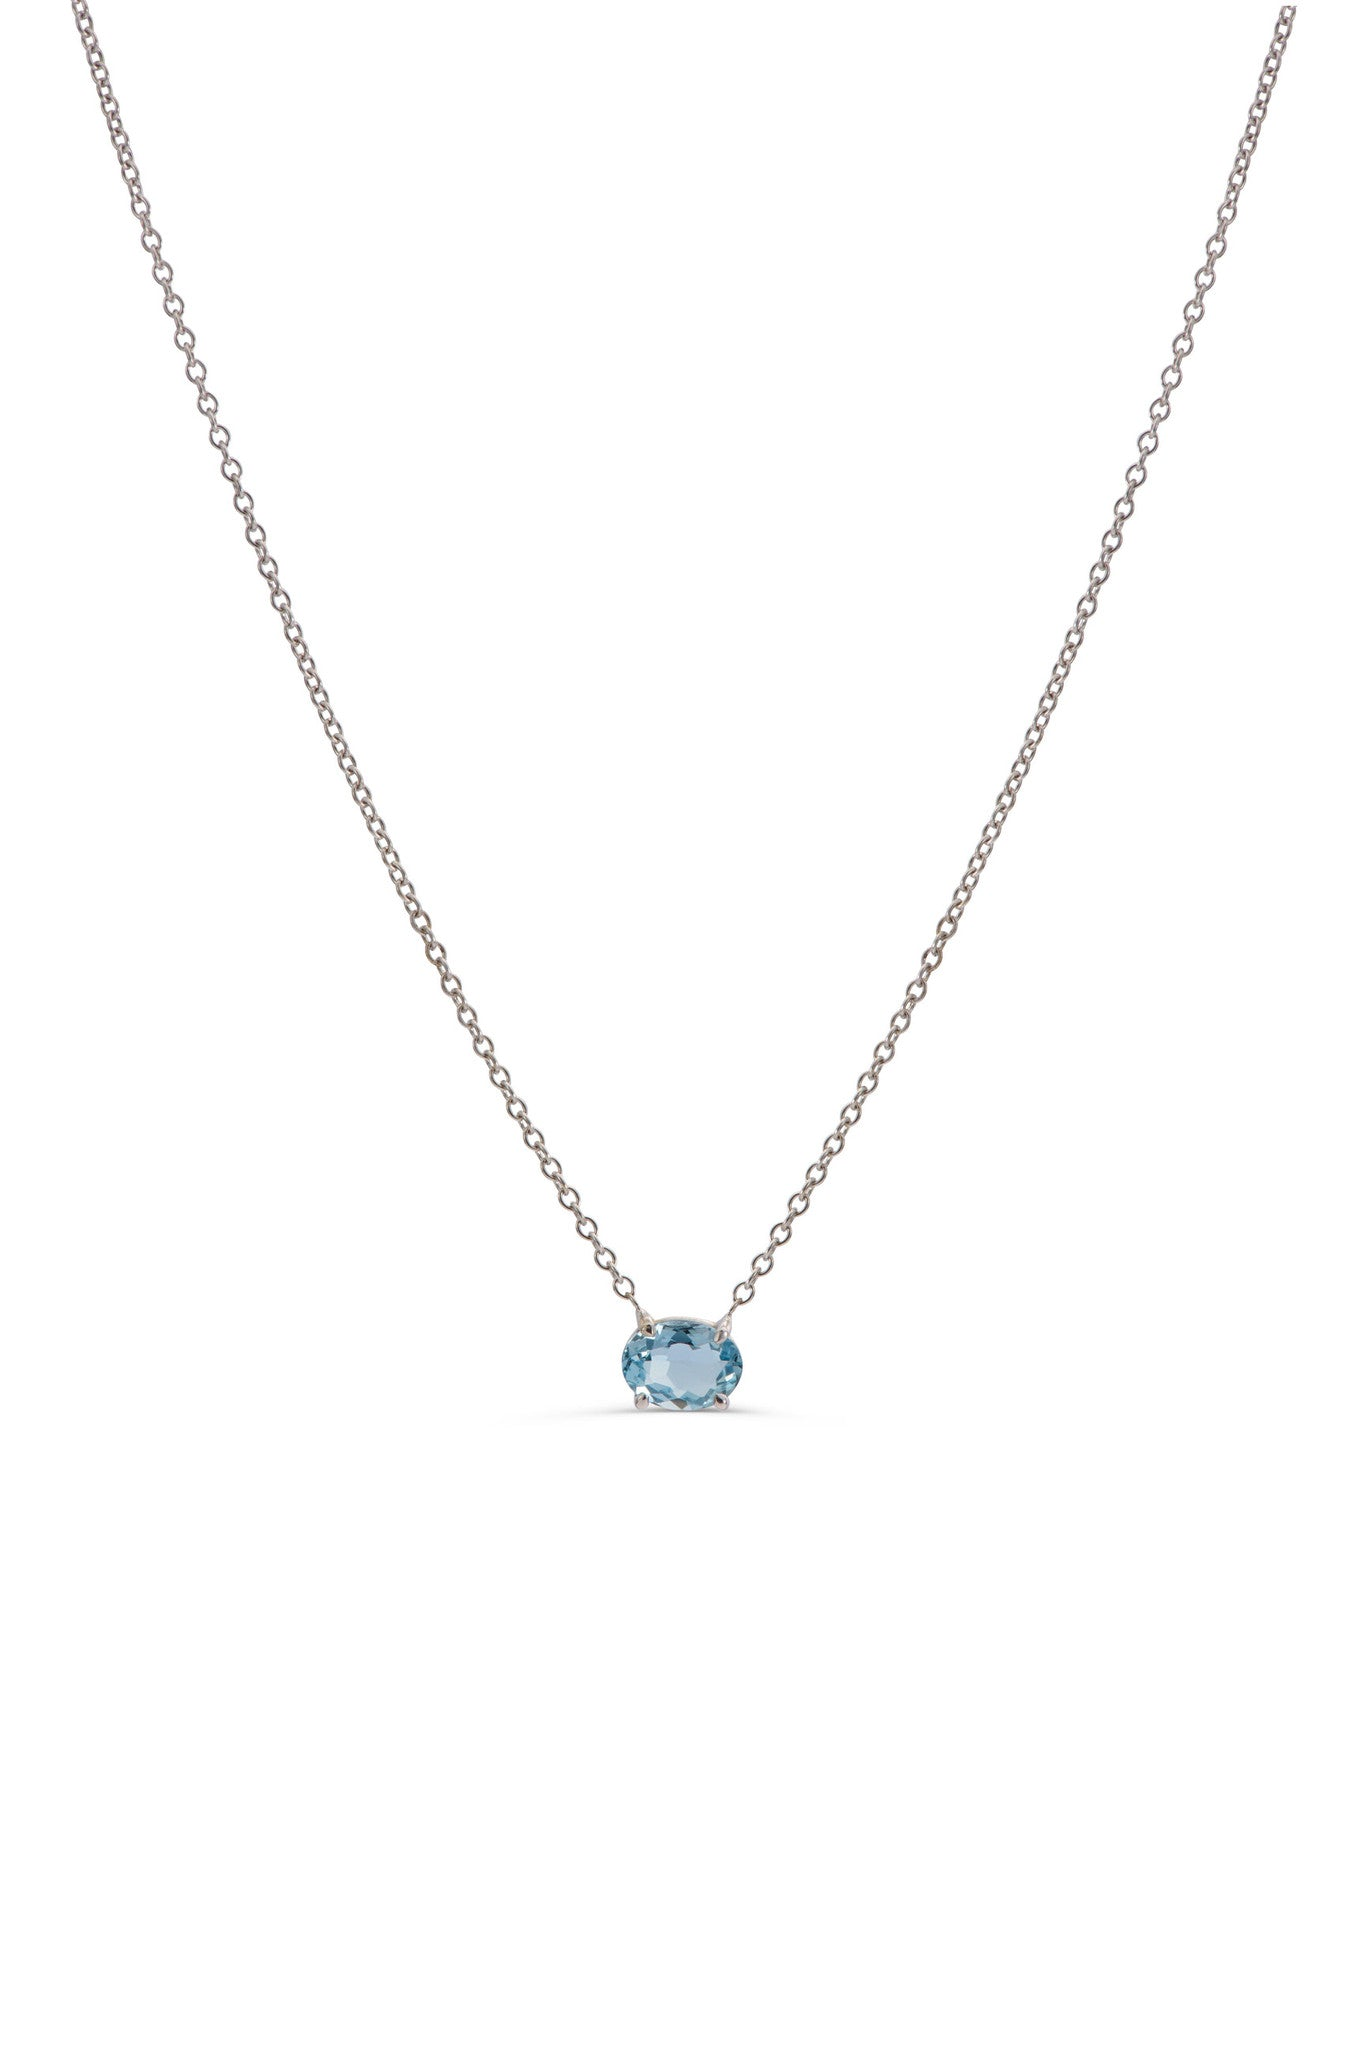 White gold Aquamarine necklace by KarenAsh New York